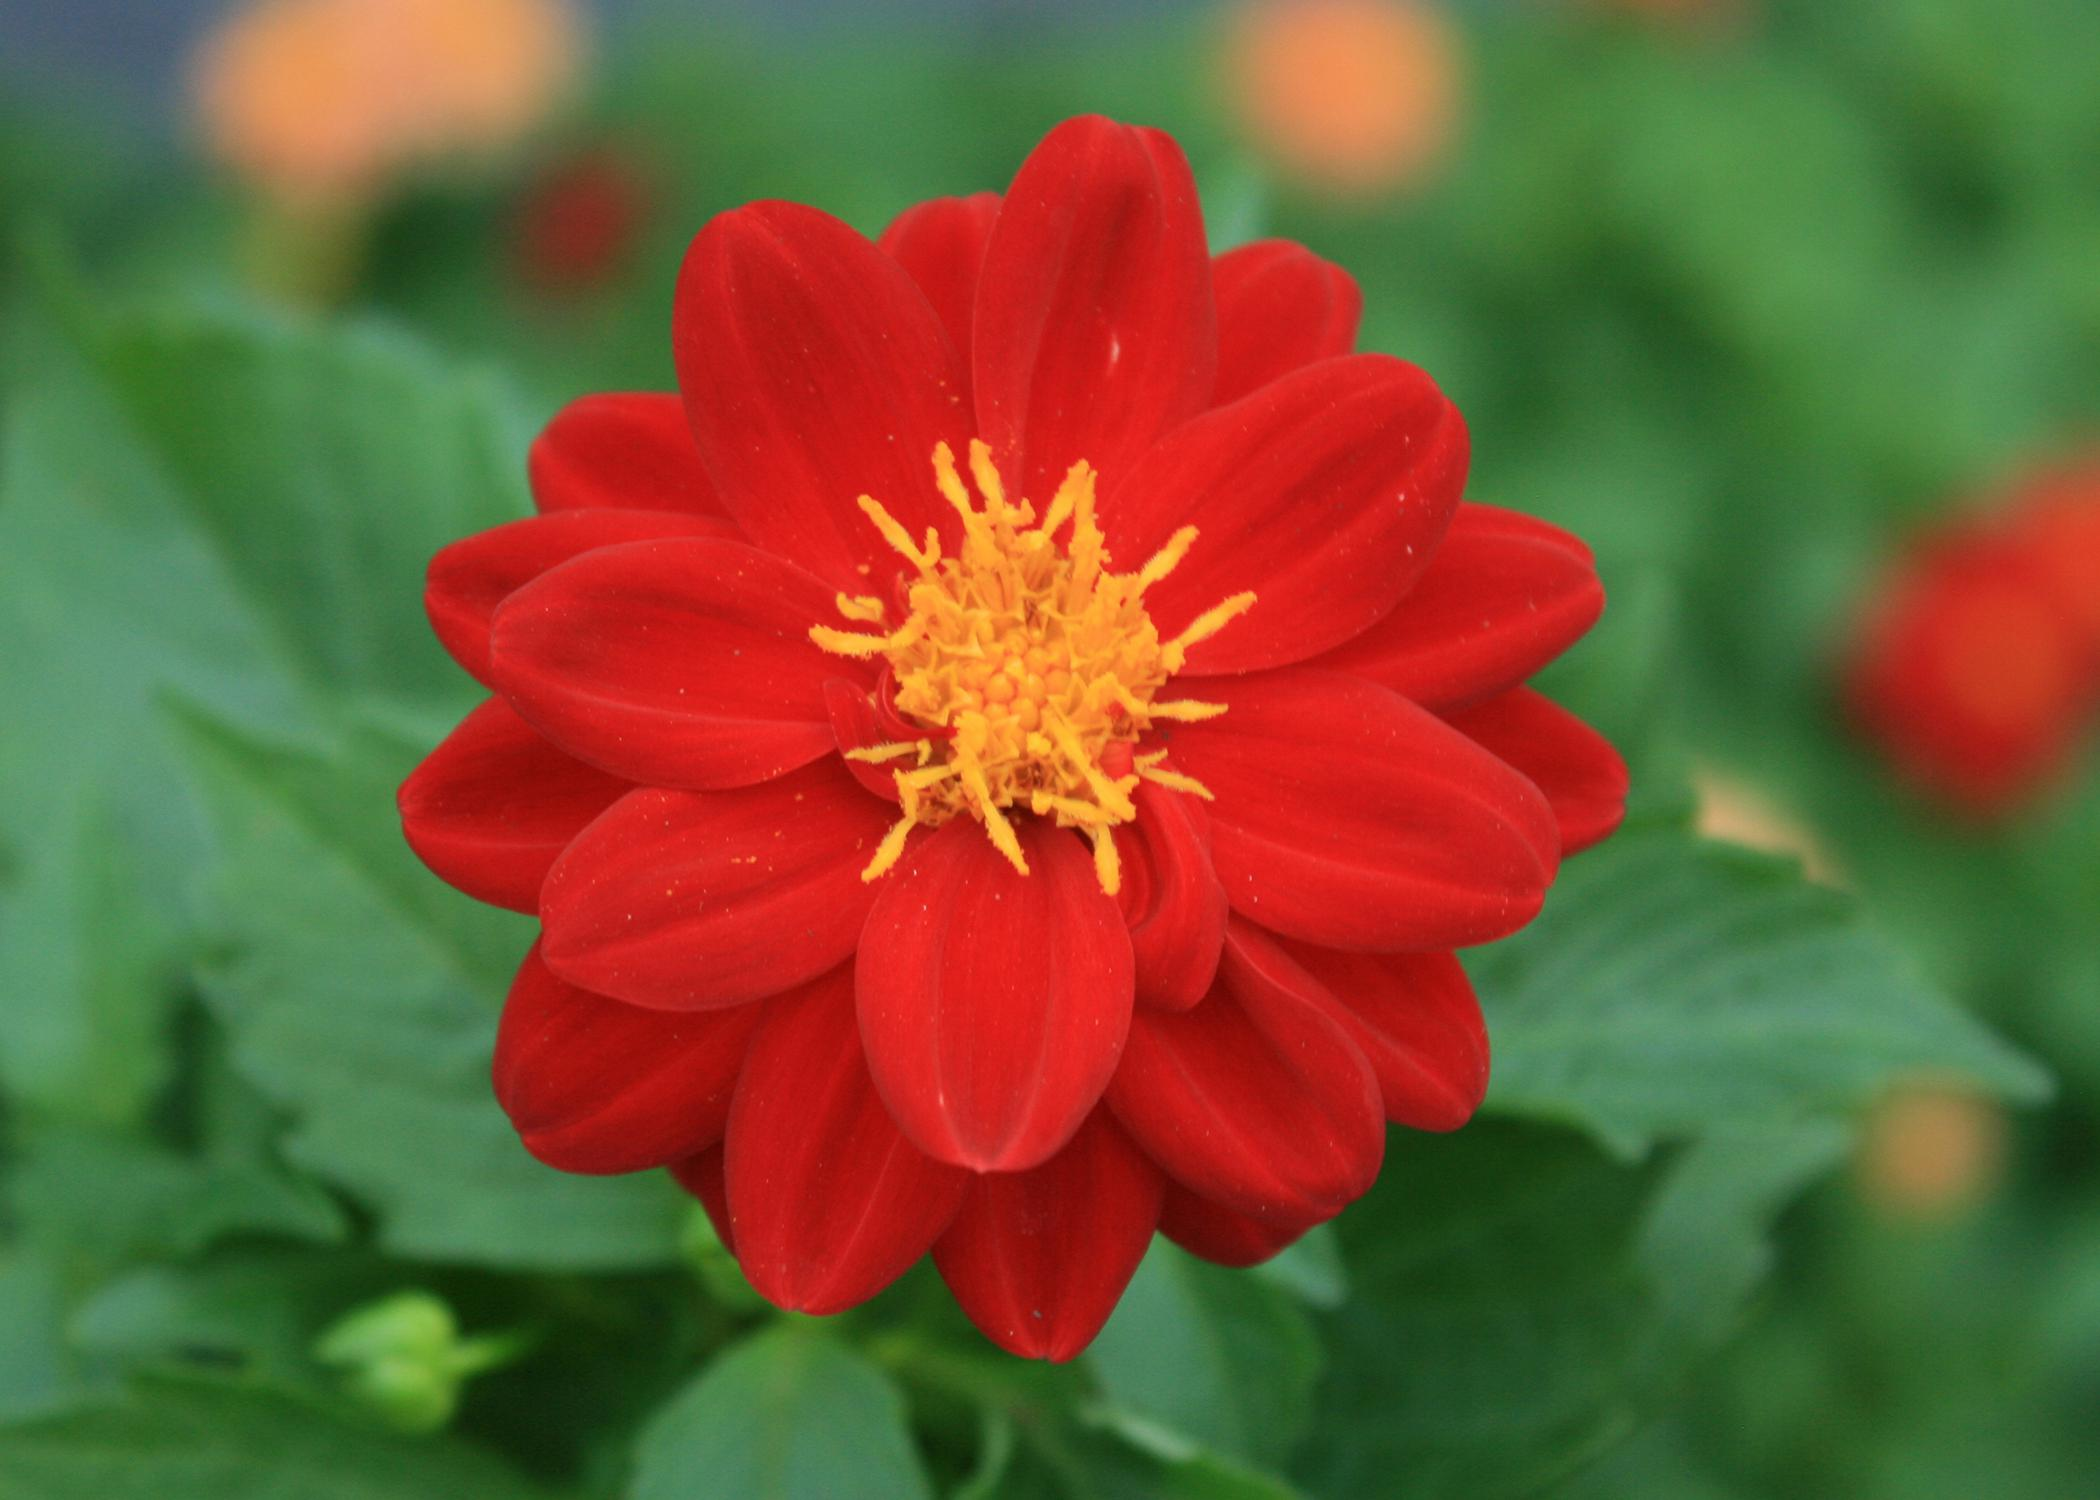 Try underused dahlias in summer landscapes mississippi state this text will be used by screen readers search engines or when the image dahlias izmirmasajfo